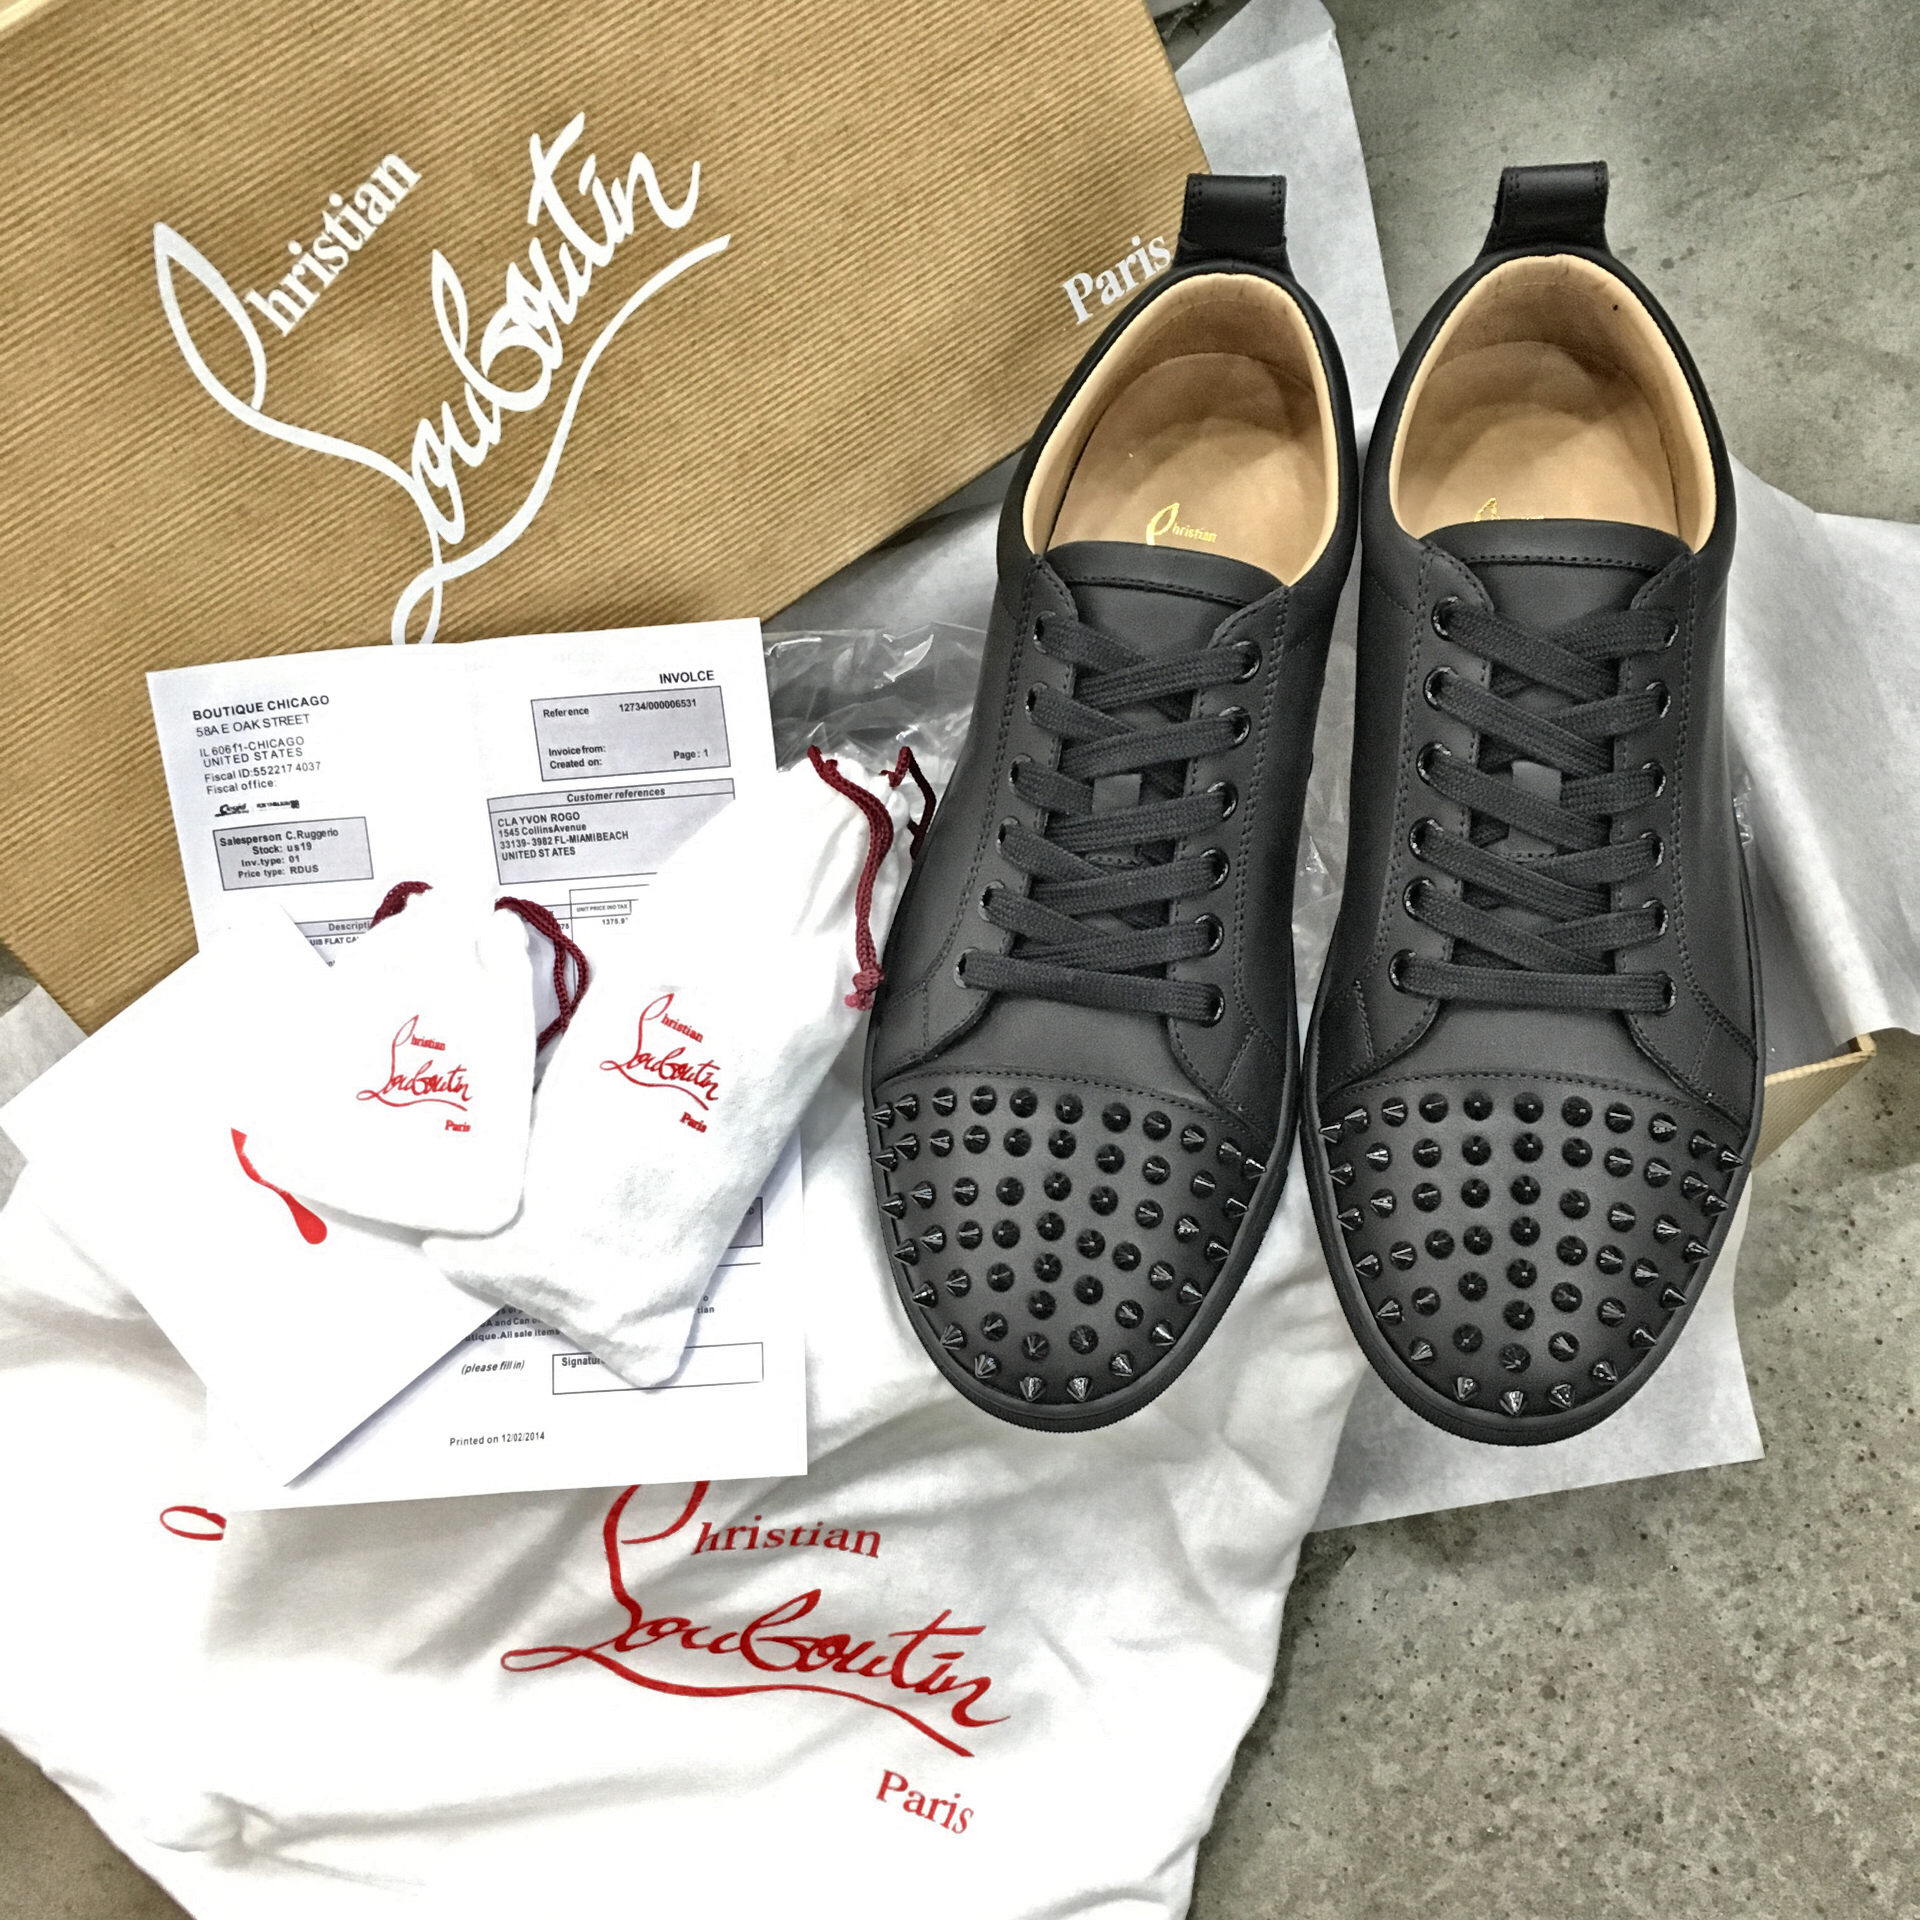 a005bd888327 How to Find Replica Christian Louboutin Men s Shoes at Cheap Wholesale  Price on Taobao and AliExpress